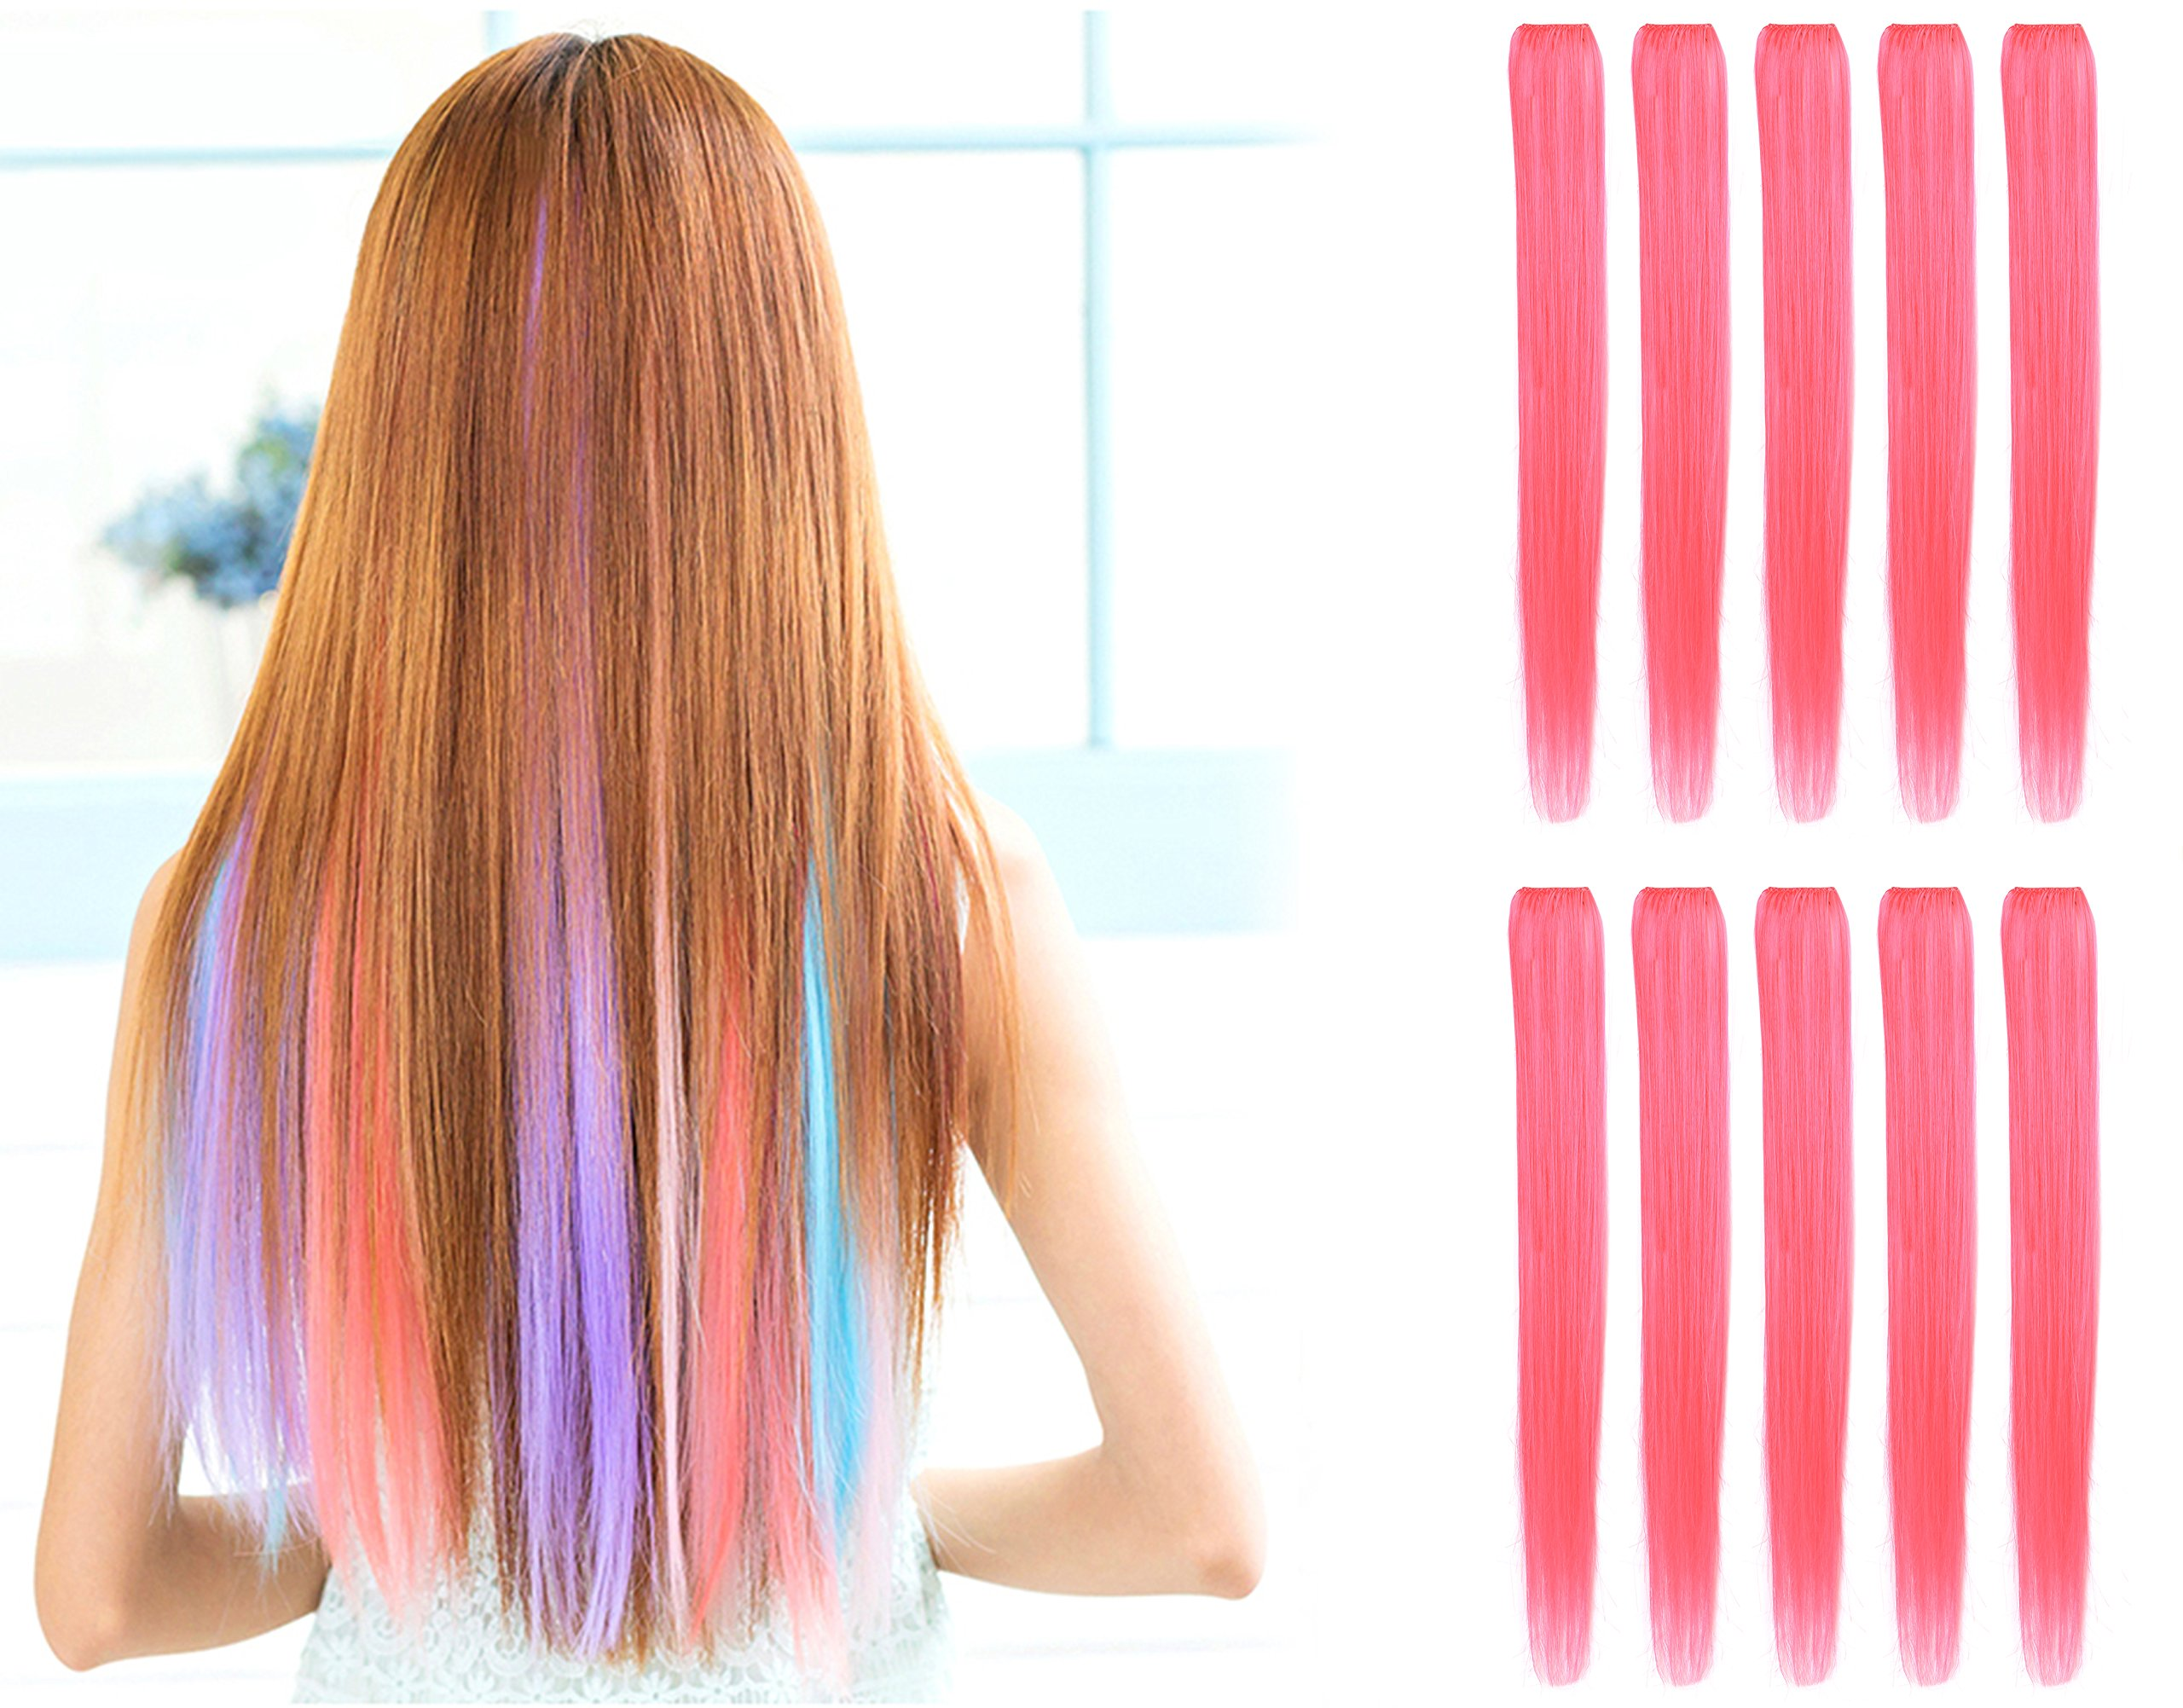 OneDor 23 Inch Straight Colored Party Highlight Clip on in Hair Extensions Multiple Colors (10 Pcs Pink)